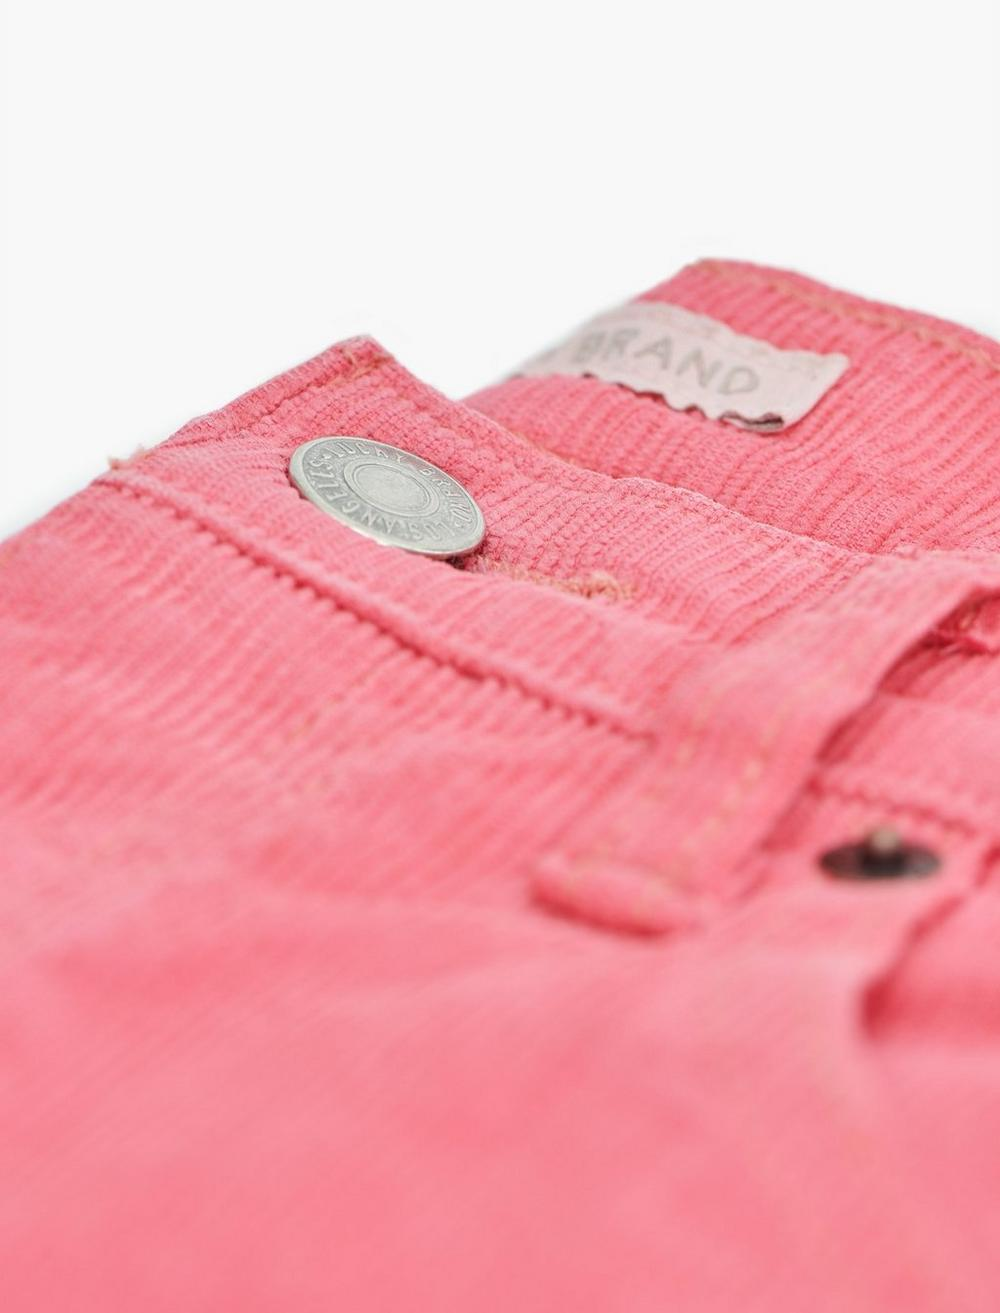 MID RISE AUTHENTIC STRAIGHT CROP CORDUROY JEAN, image 8